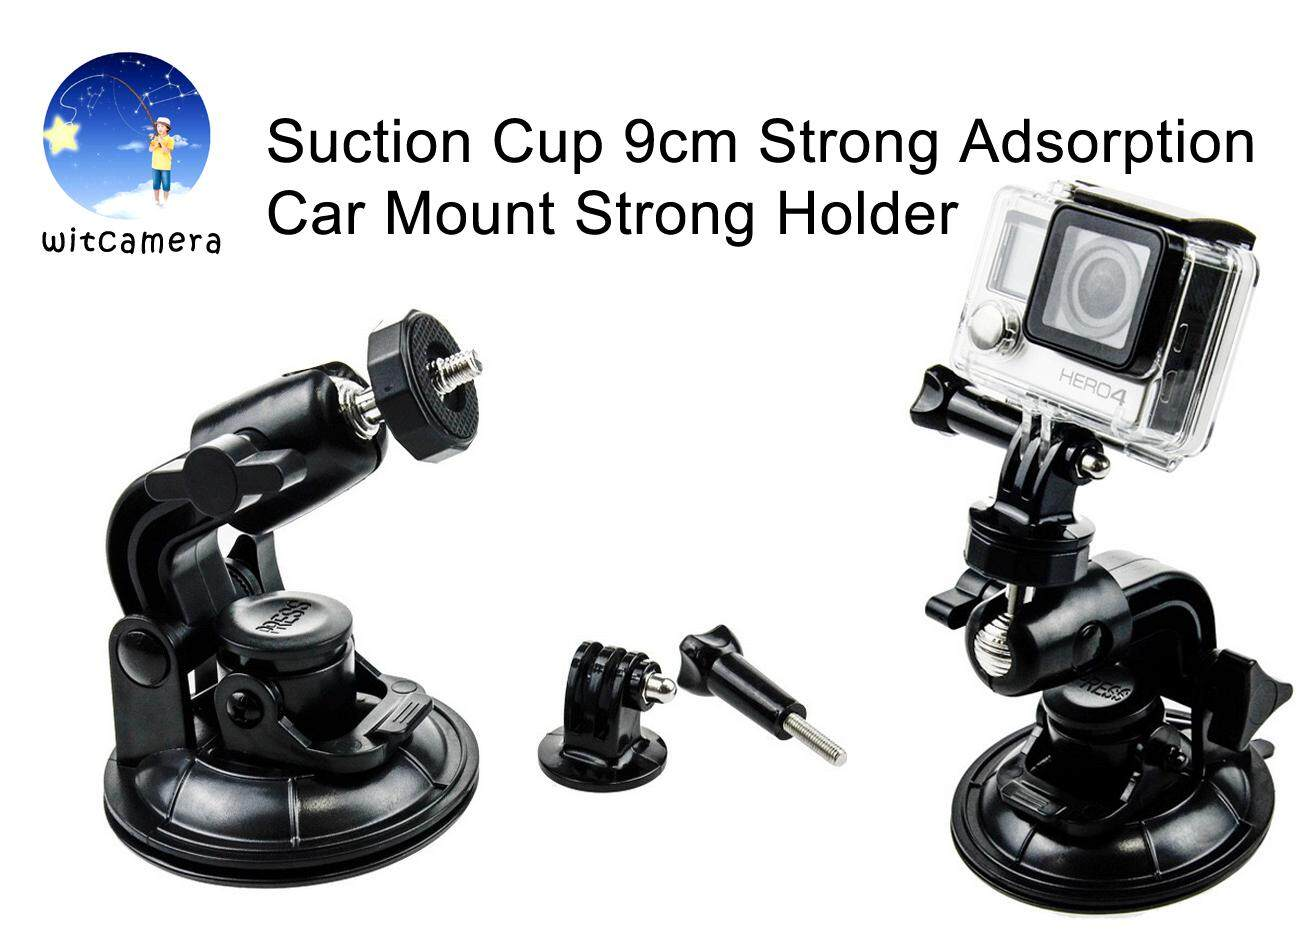 Suction Cup 9cm Strong Adsorption Car Mount for GoPro Acation Camera Hero 6/5/4/3+/3 models Sjcam , Xiao YI  Suction Mounts Strong Holder จุกดูด 9 เซนติเมตรการดูดซับกำลังสูงรถขายึดกล้องโกโปร Acation Camera Hero 6/5/4/3+/3 models Sjcam , Xiao YI   Mounts S